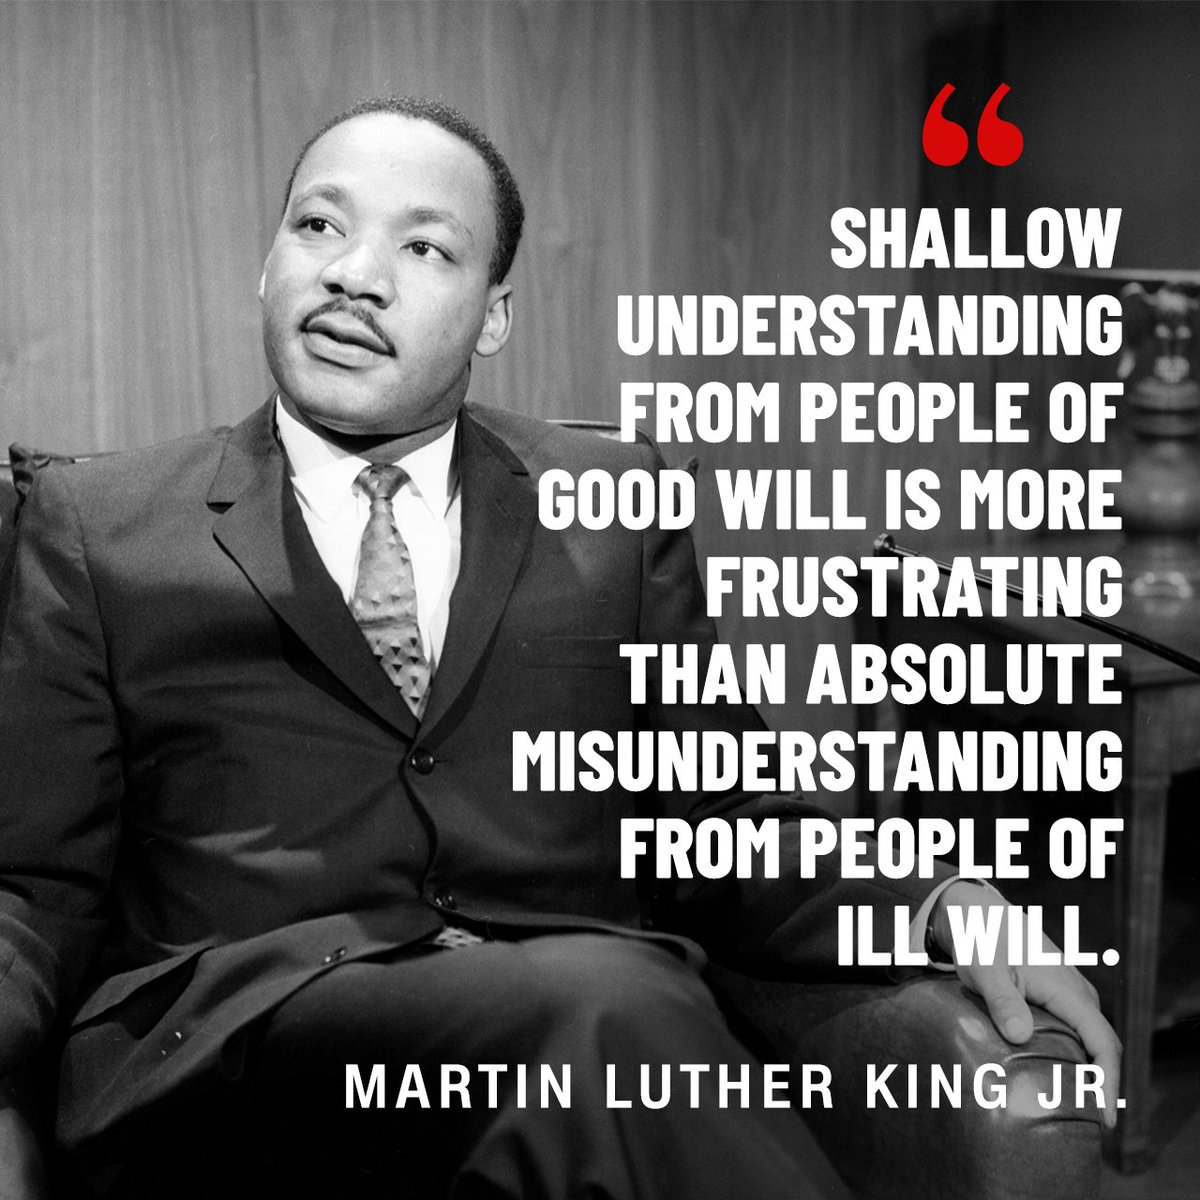 Here are 9 quotes from the Rev. Martin Luther King Jr. that inspire today's social justice leaders: https://t.co/ZZB3QB9OVW https://t.co/NOkb6qU9A3